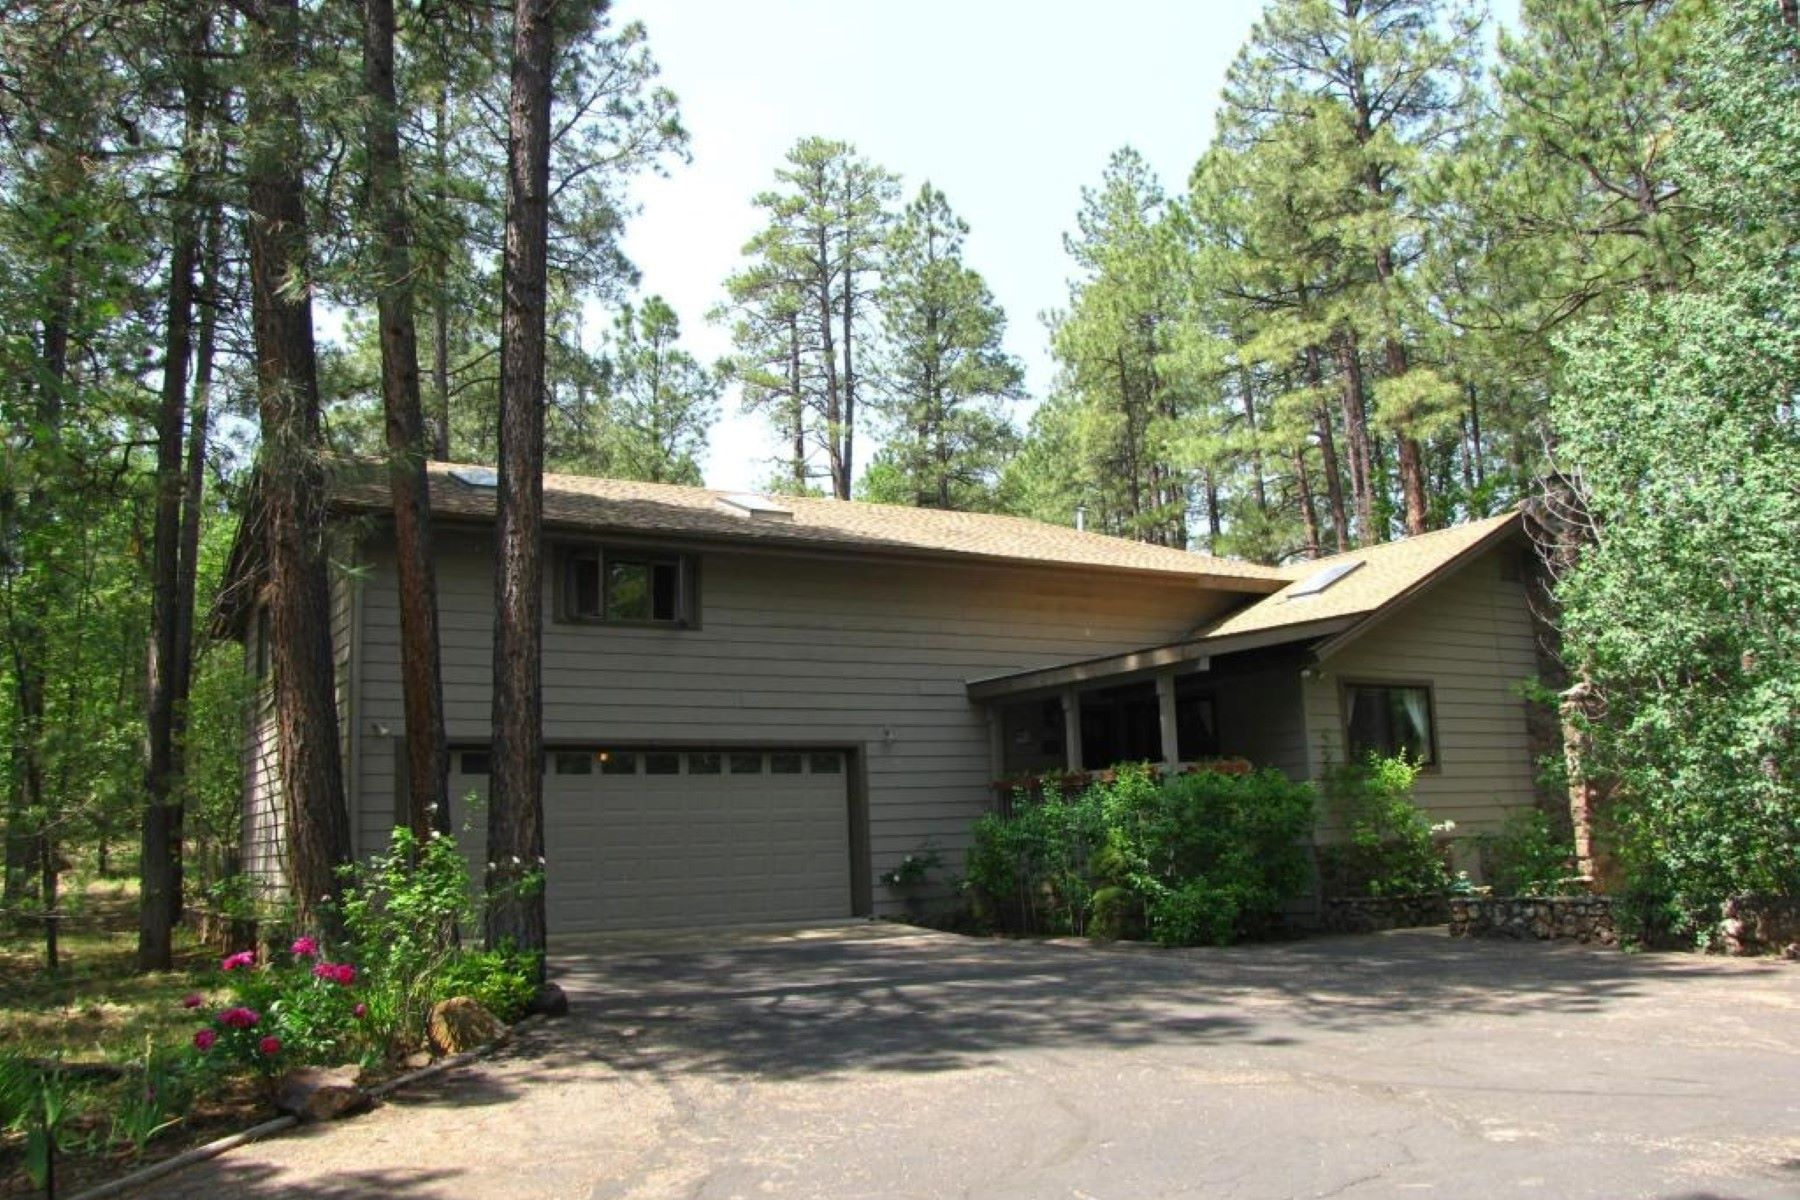 Single Family Home for Sale at Great Pinetop Home 3087 ASPEN LOOP, Pinetop, Arizona, 85935 United States